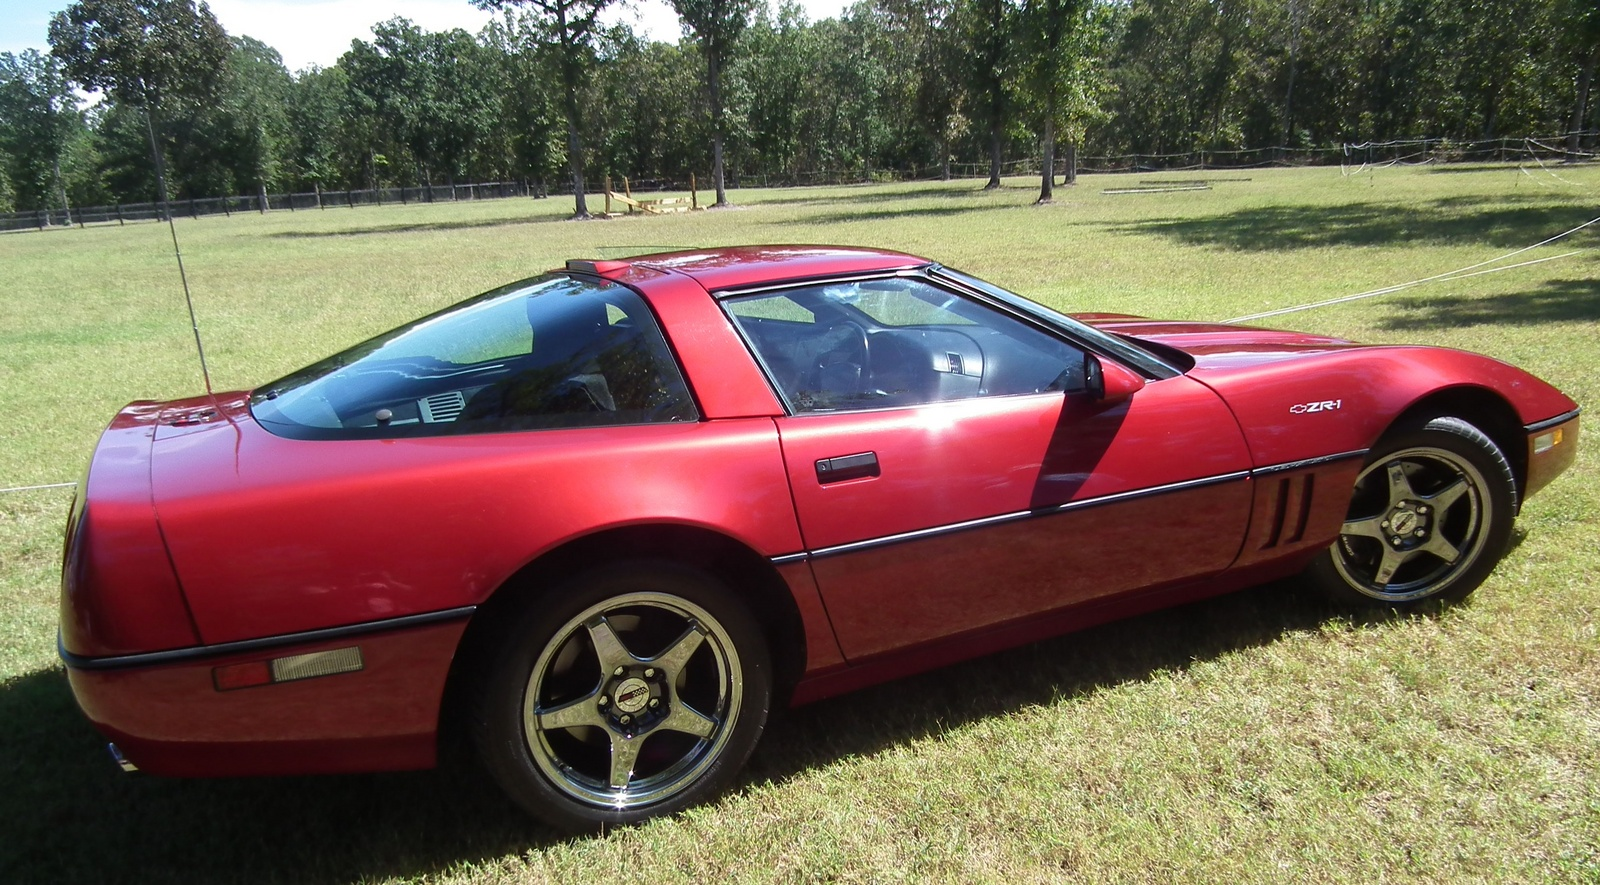 1990 Chevrolet Corvette Pictures C415 pi36816670 together with 1994 Chevrolet Corvette Pictures C413 also 32746 Accoudoir Pour Renault Captur Gris further G14065 together with 1980 Chevrolet Corvette Pictures C437 pi35913609. on 2003 chevy camaro